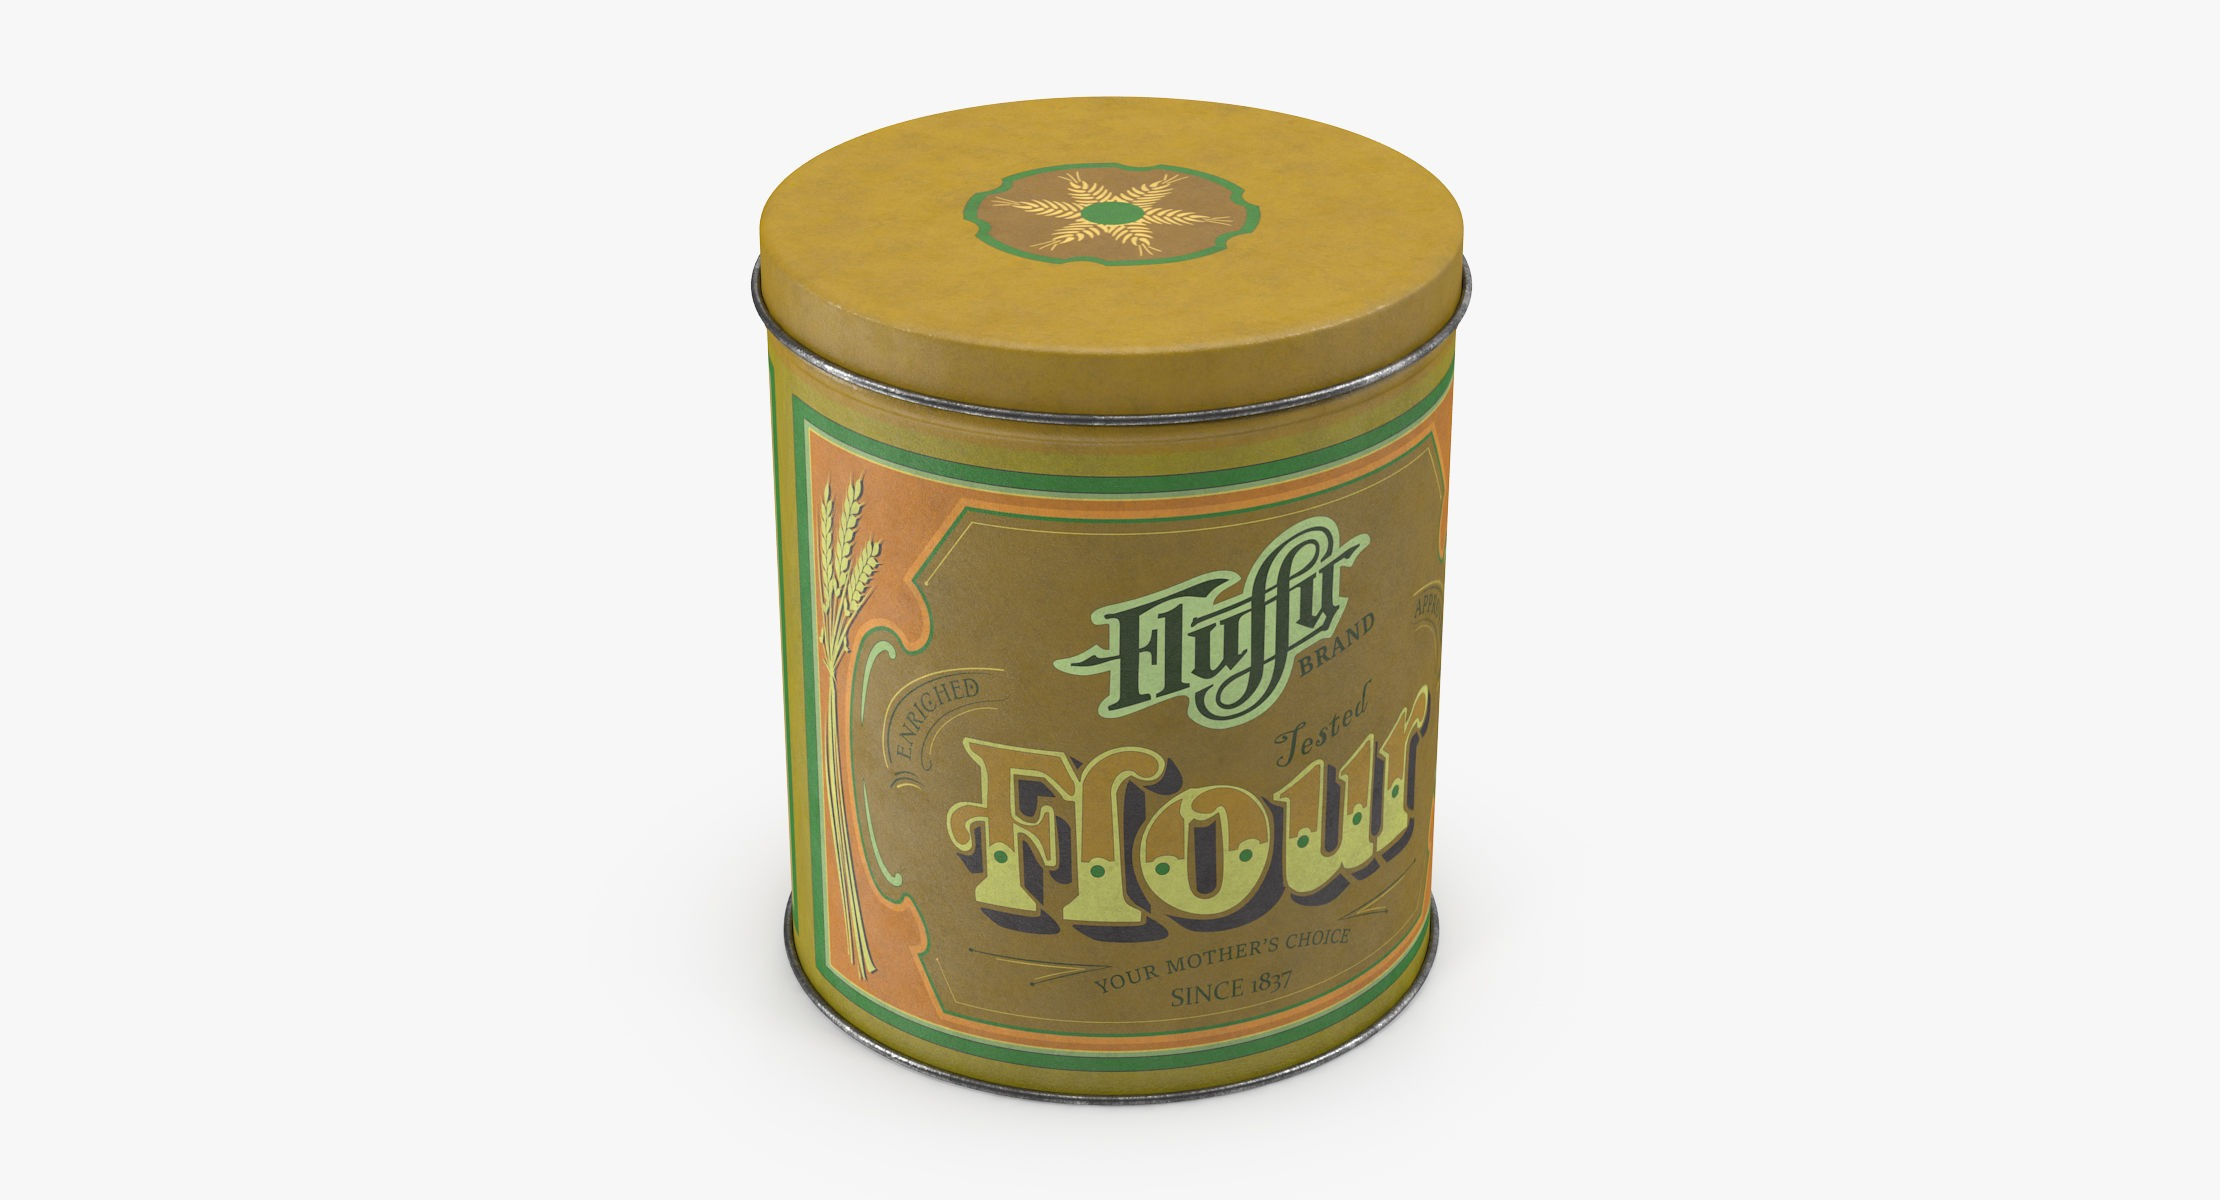 Vintage Metal Kitchen Tin - Flour - reel 1